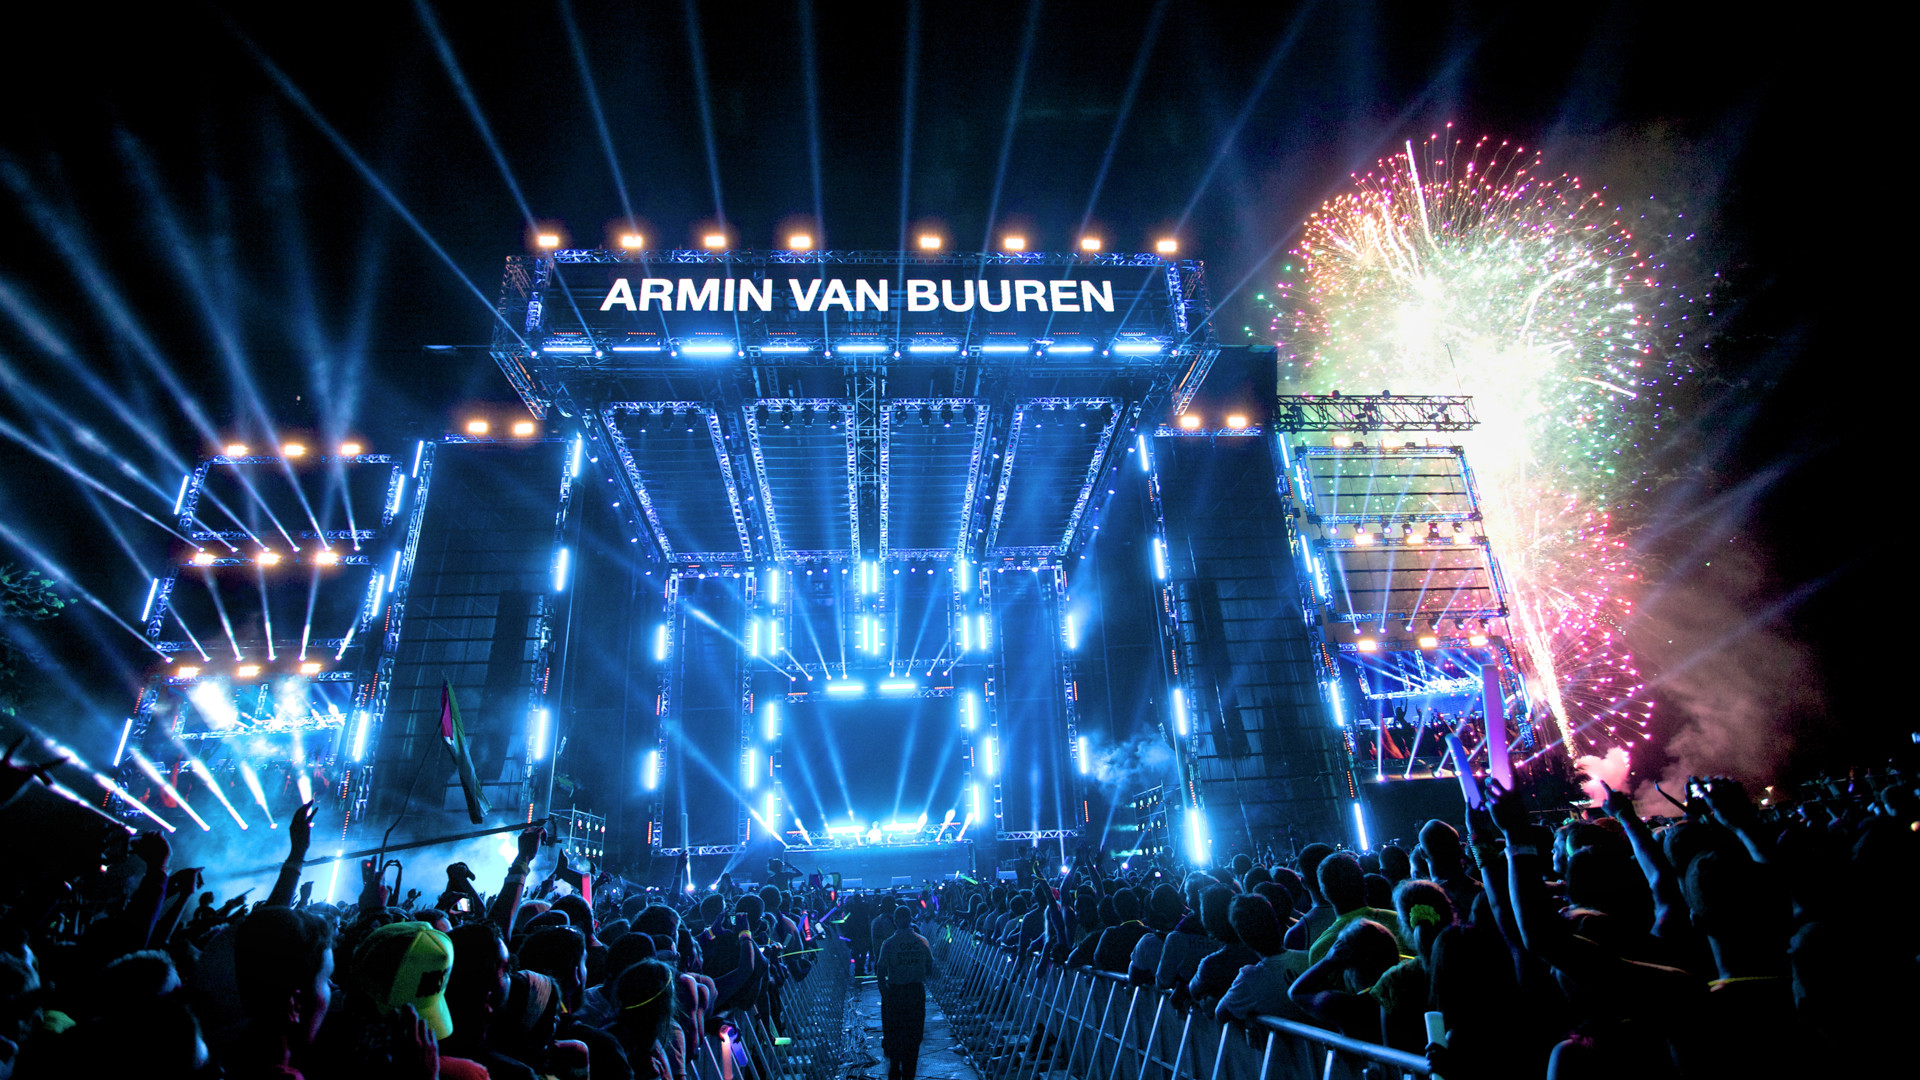 Download Ultra Music Festival Wallpaper Hd Gallery: Edm Festival Wallpaper (81+ Images